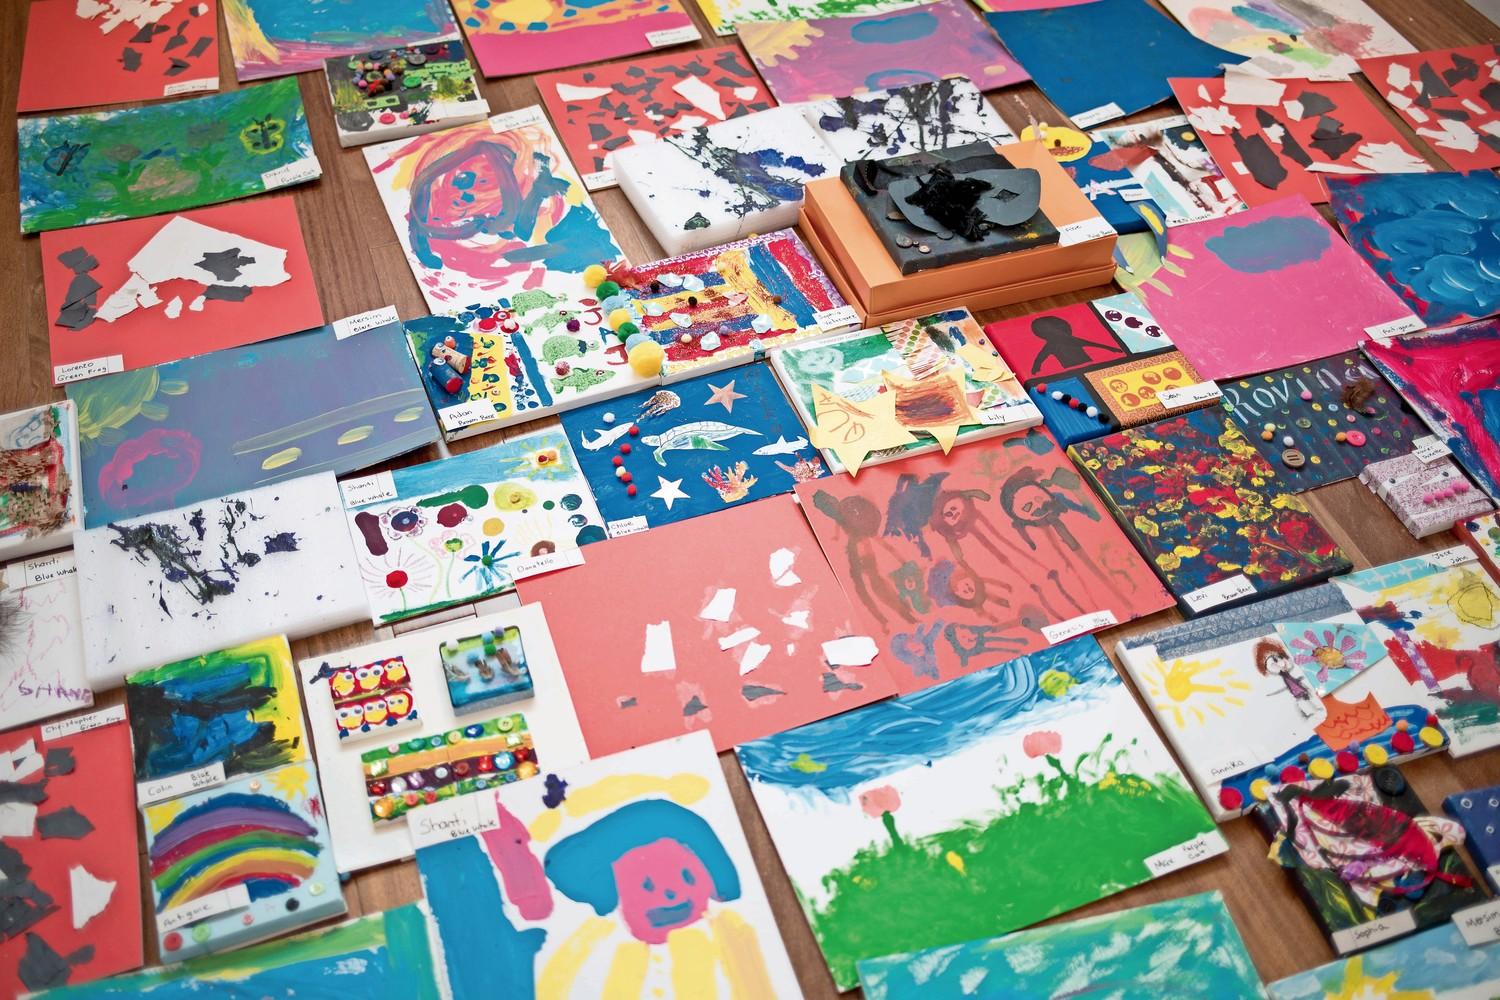 Canvases laid out on the floor show works of art that parents and children worked on together. The canvases are on display as part of the annual art gala at Bedrock Preschool.